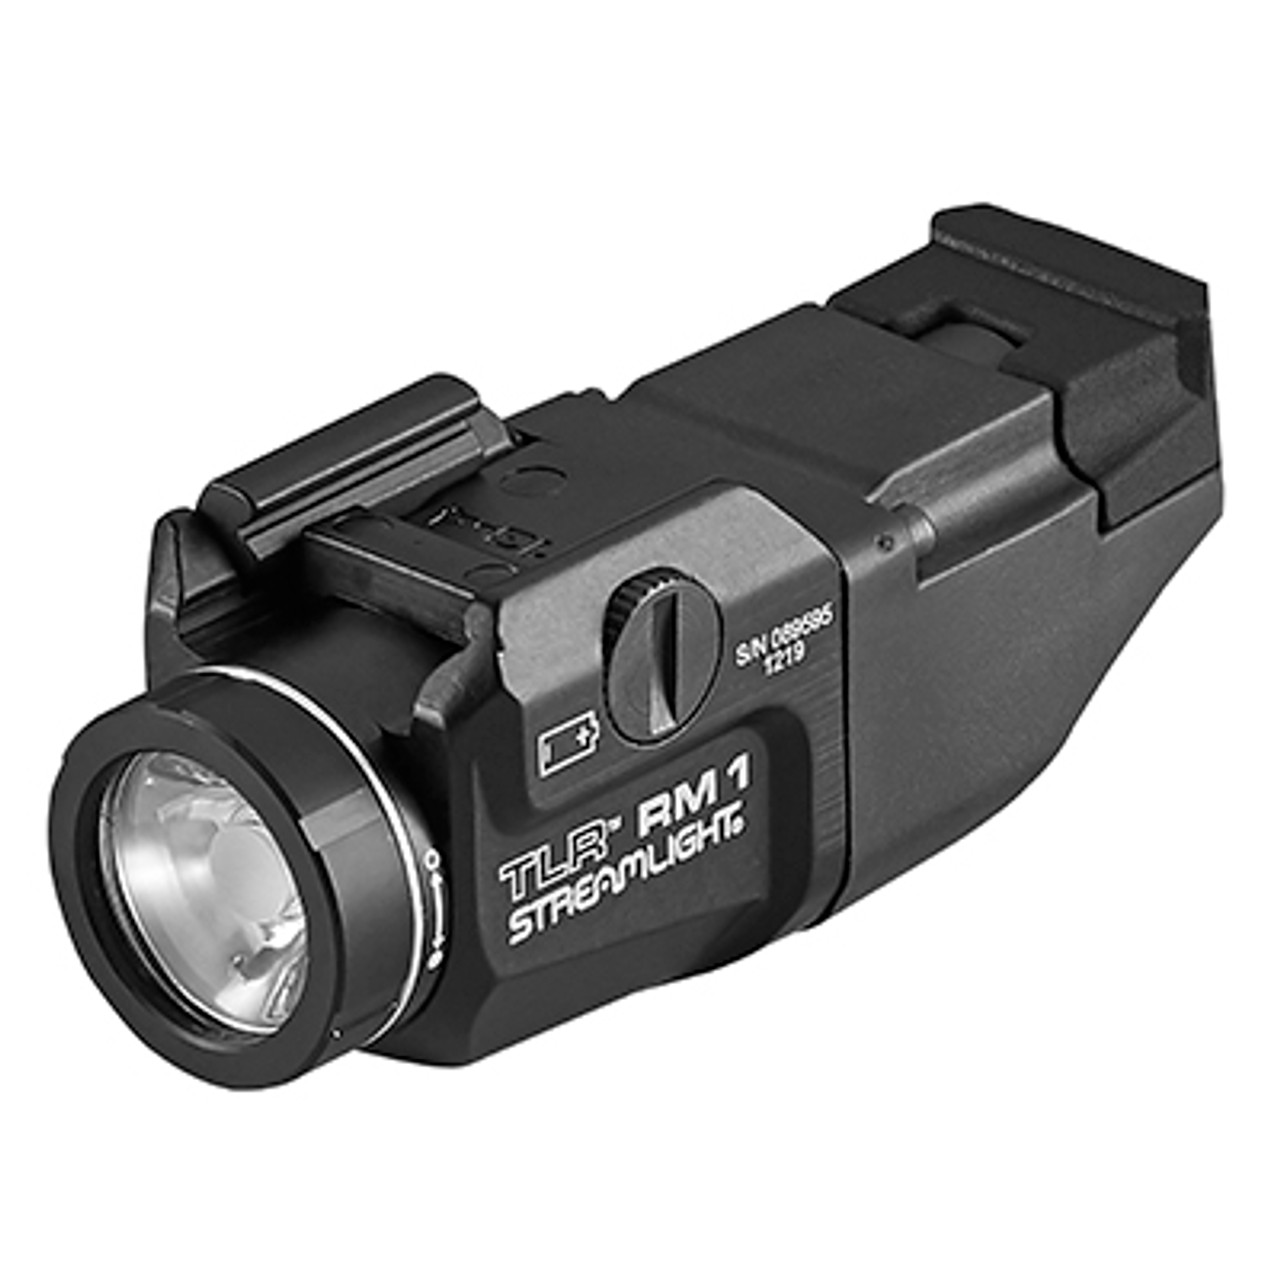 Streamlight - TLR® RM 1 RAIL MOUNTED TACTICAL LIGHTING SYSTEM